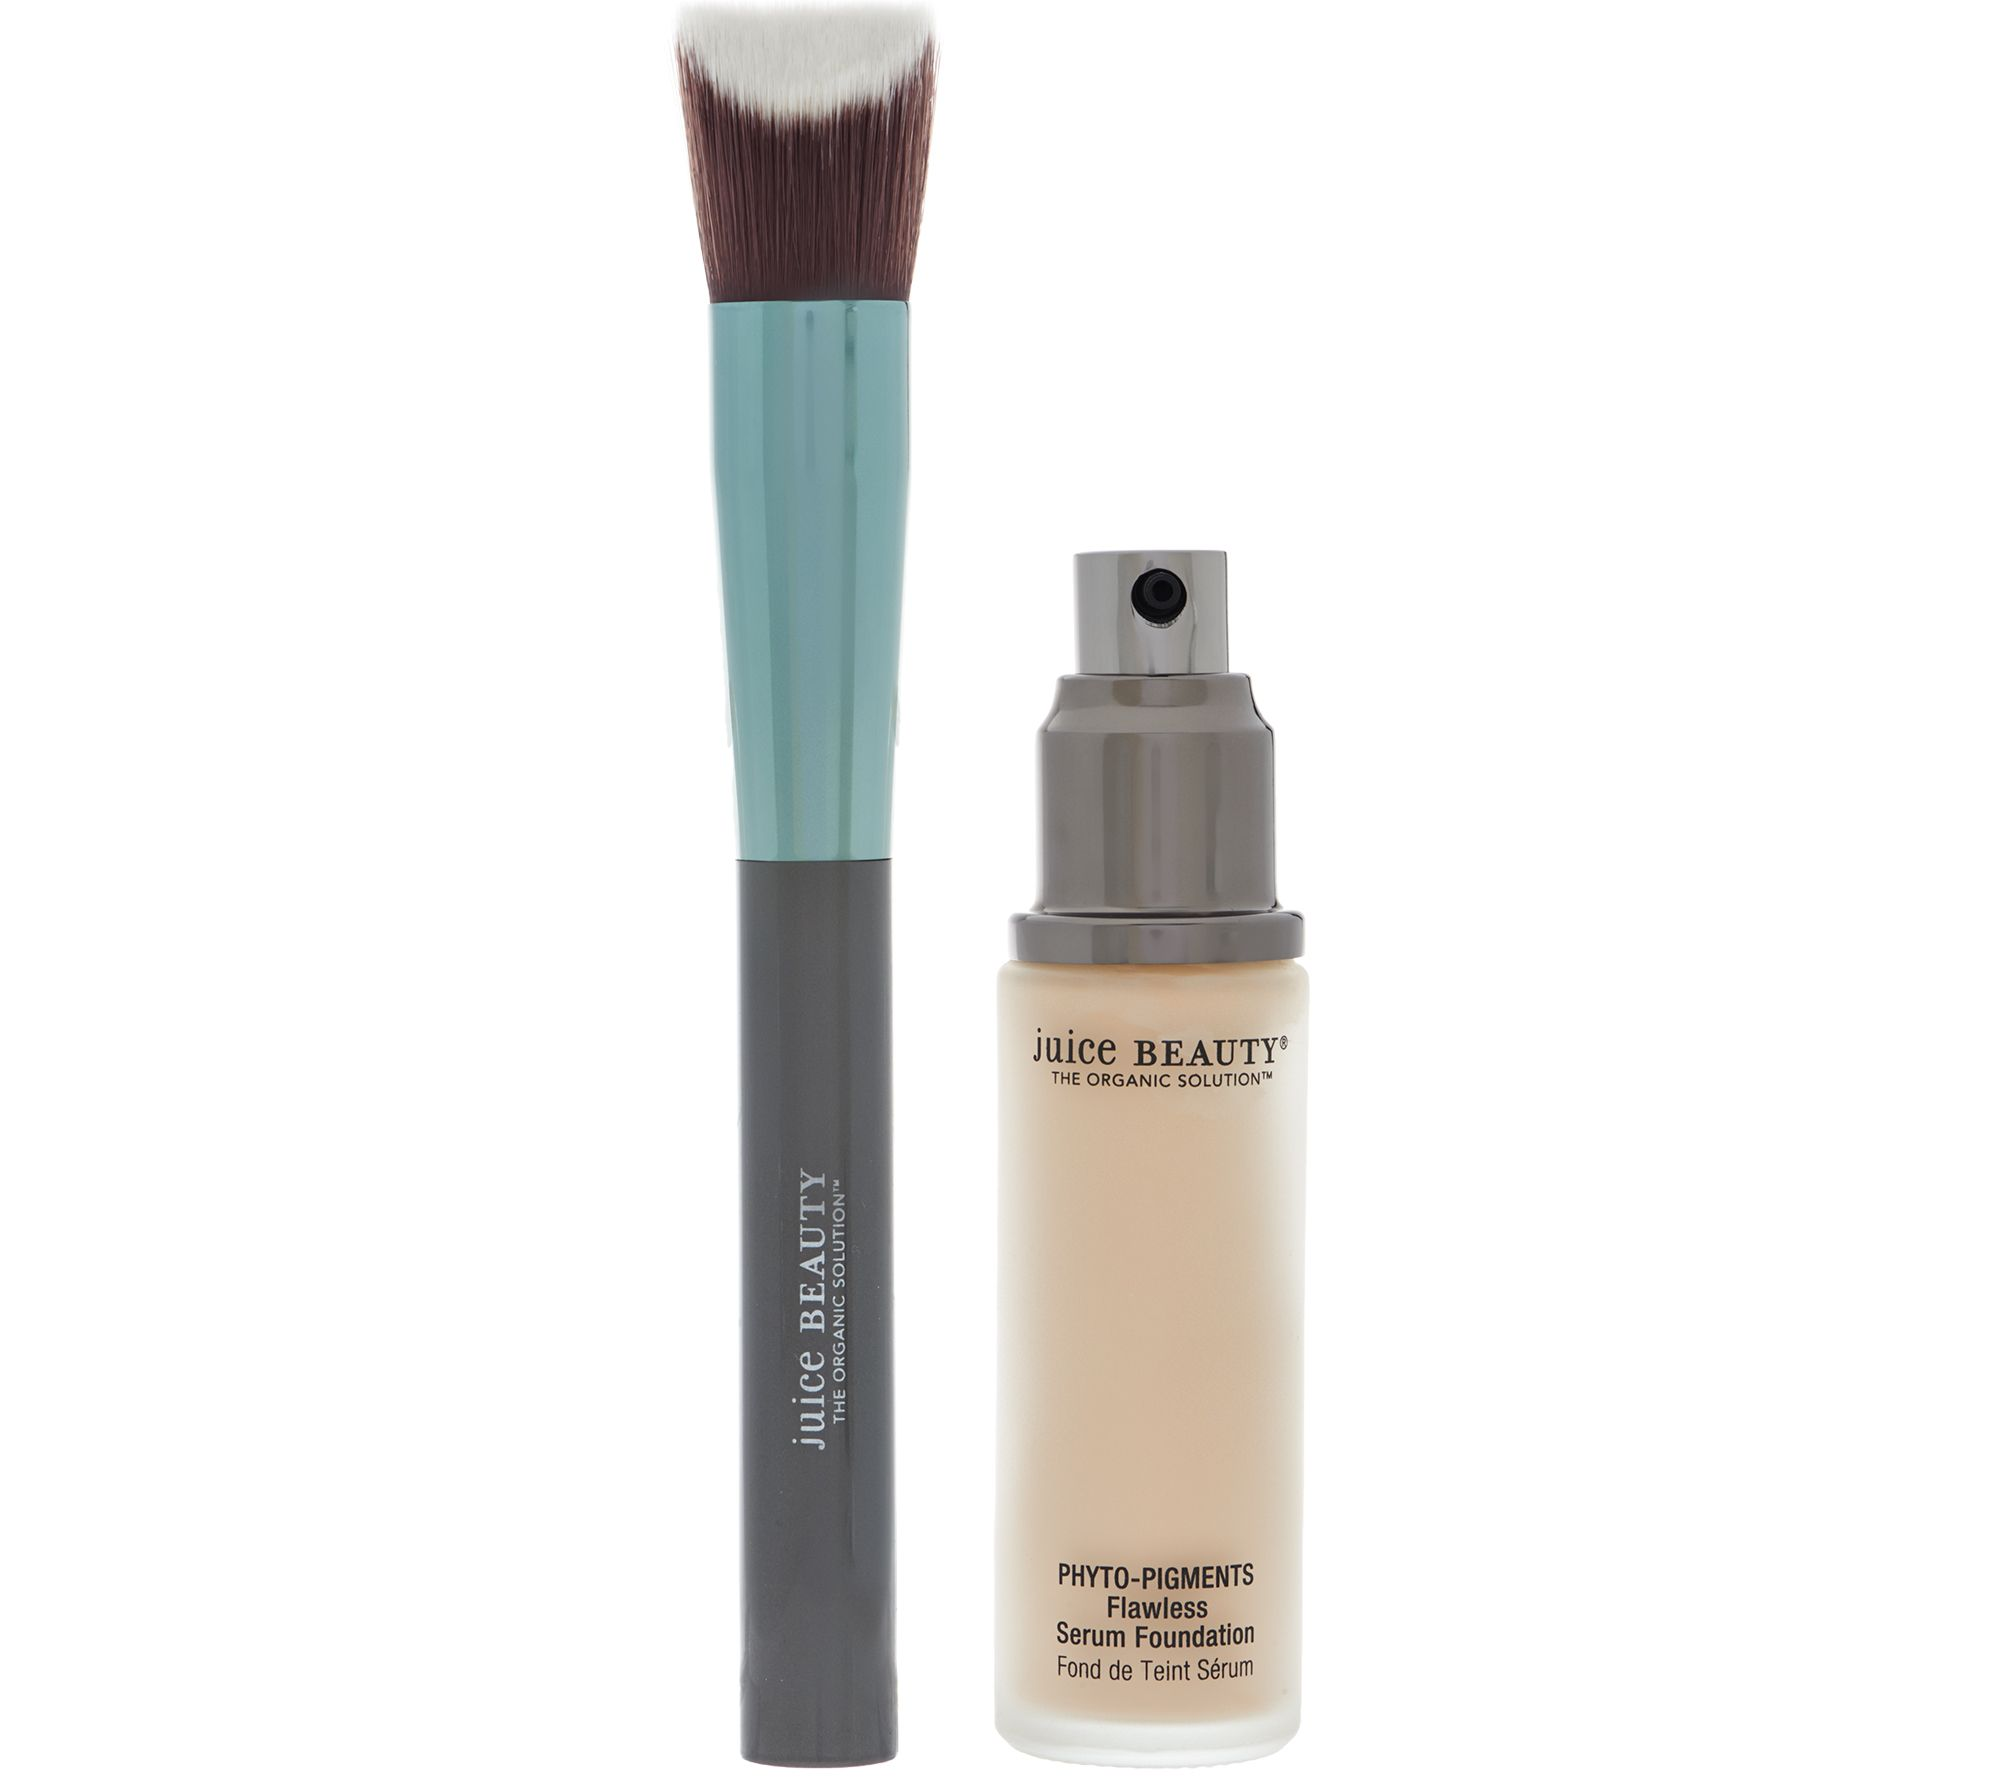 Juice Beauty Serum Foundation With Angle Brush